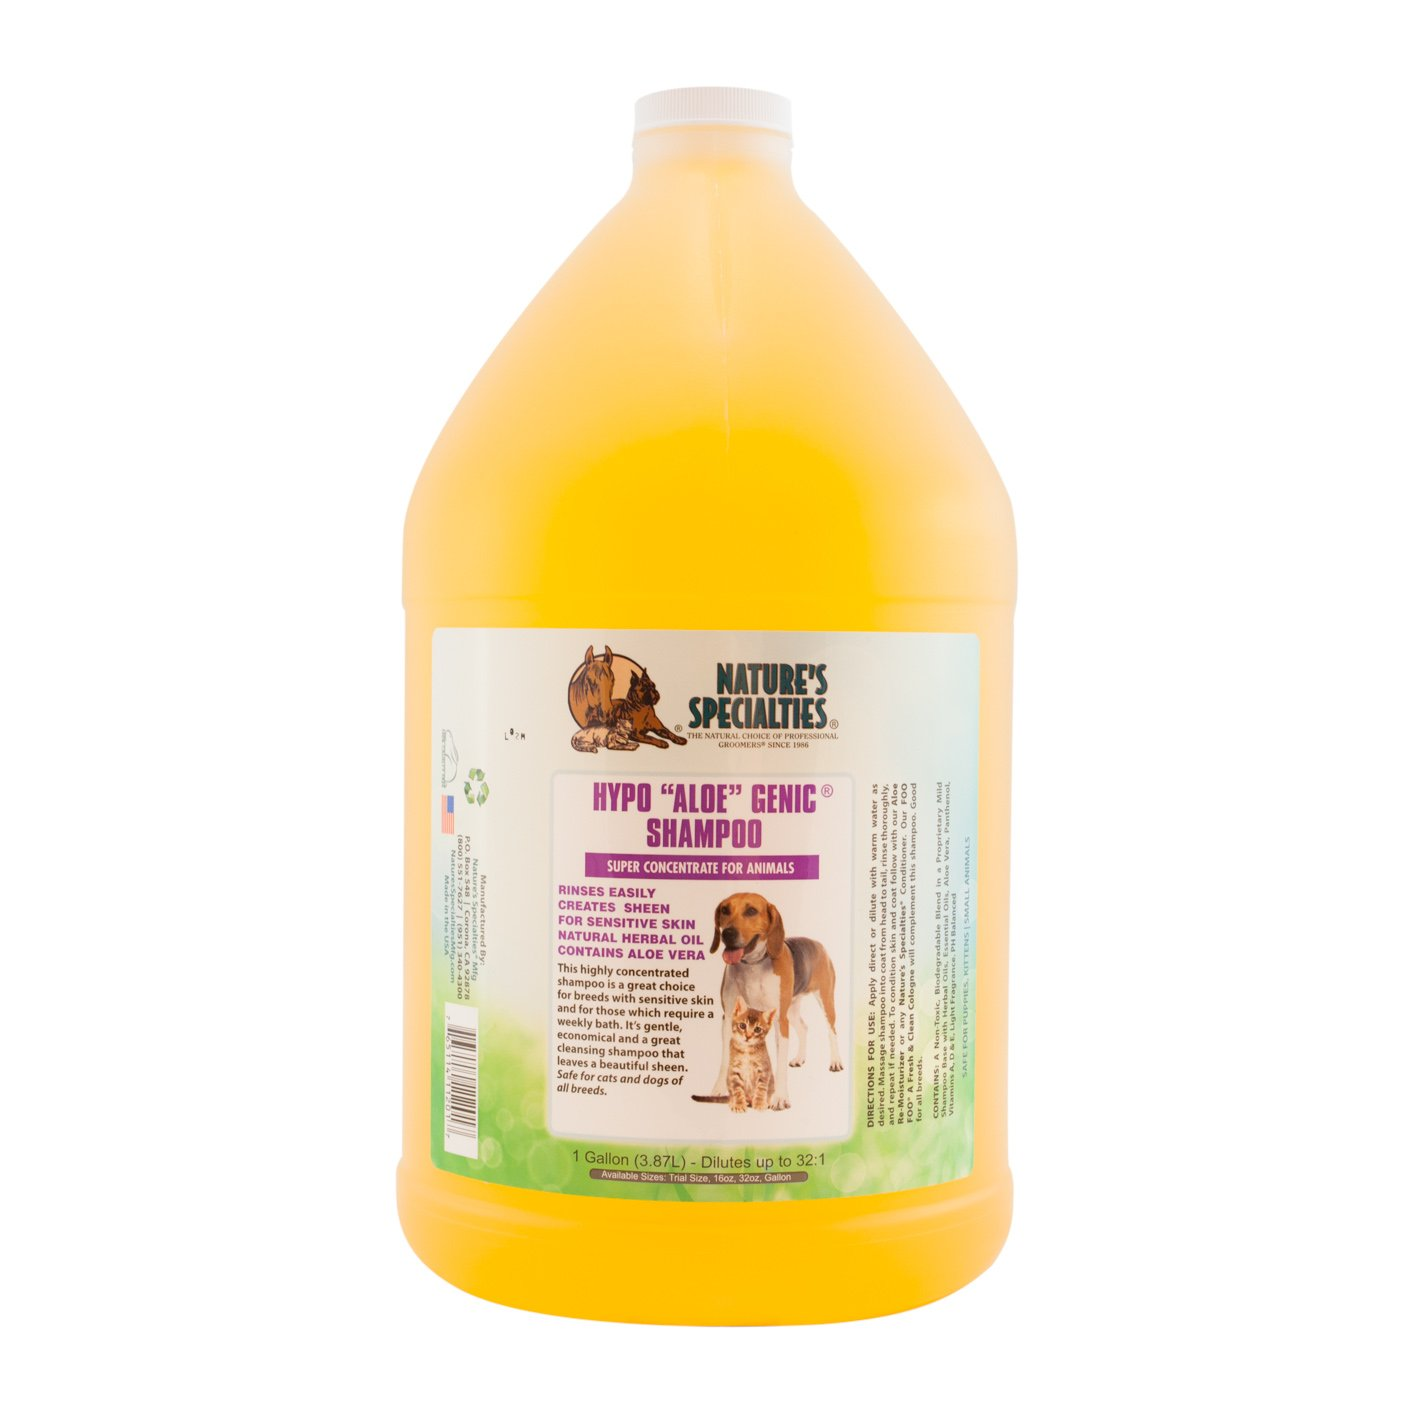 Nature's Specialties Hypo Aloe Genic Shampoo for Pets by Nature's Specialties Mfg